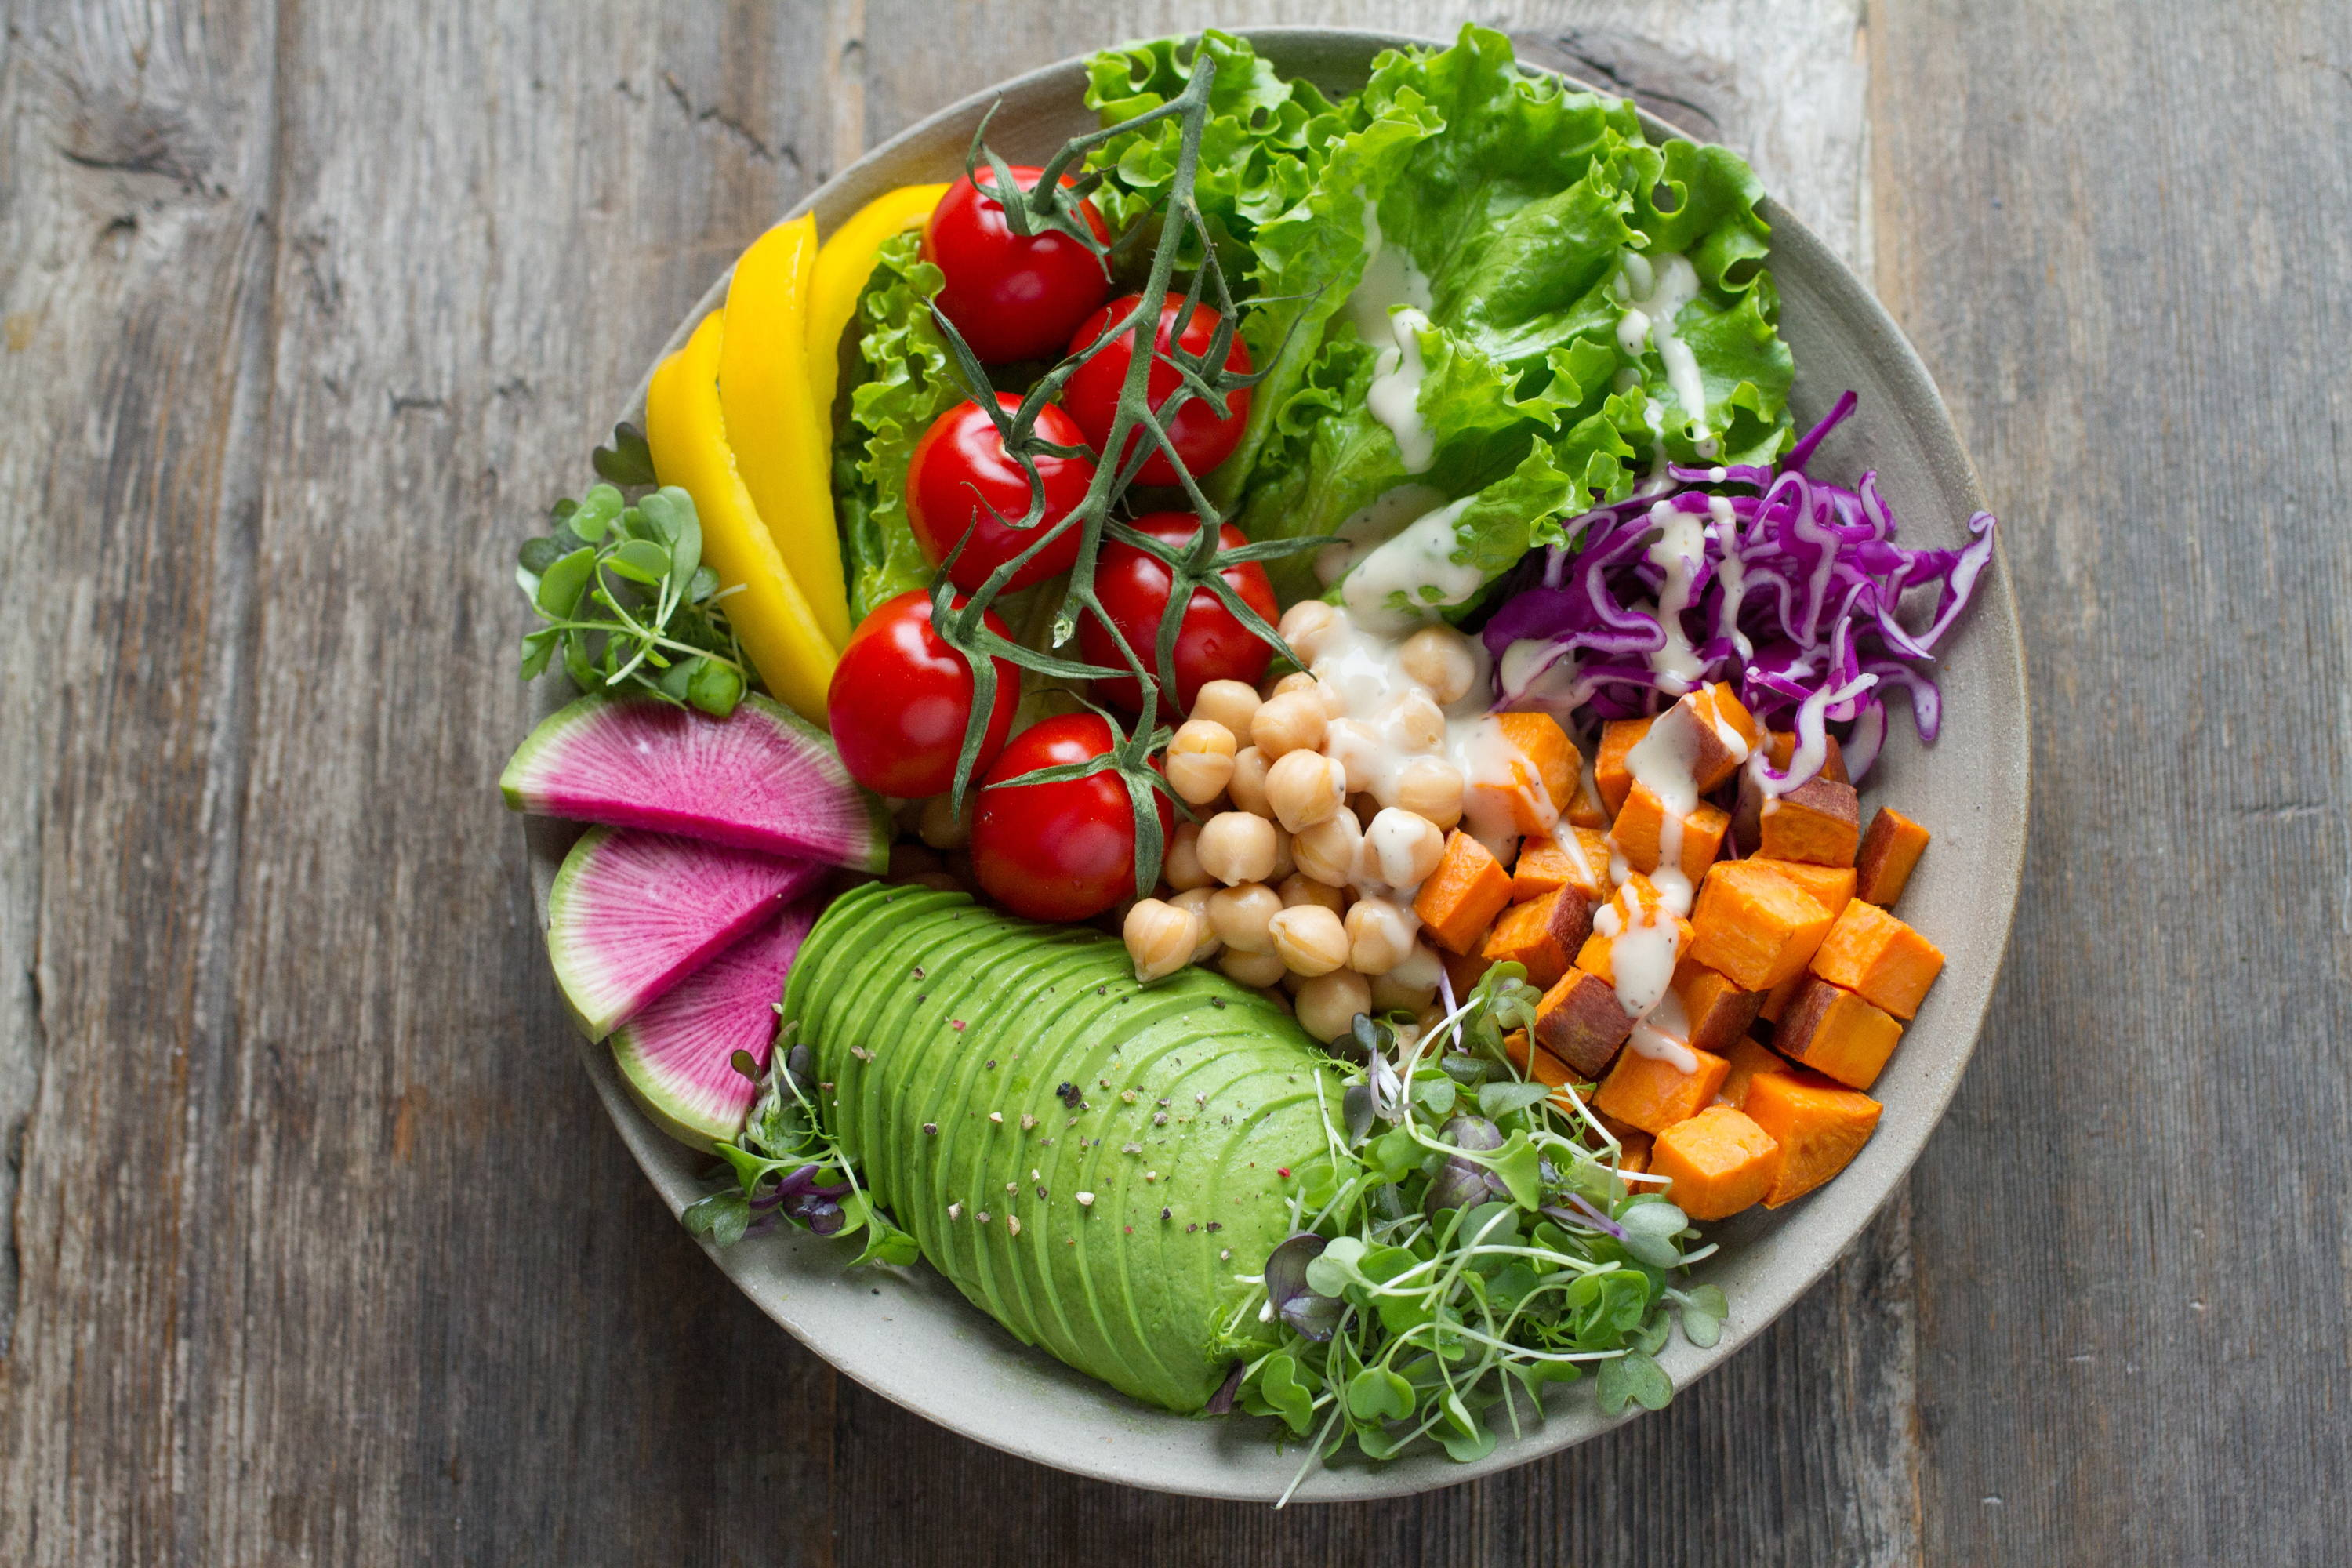 plant based salad plate with avocado lettuce tomatoes radishes yellow pepper cabbage, sweet potatoes and garbanzo beans